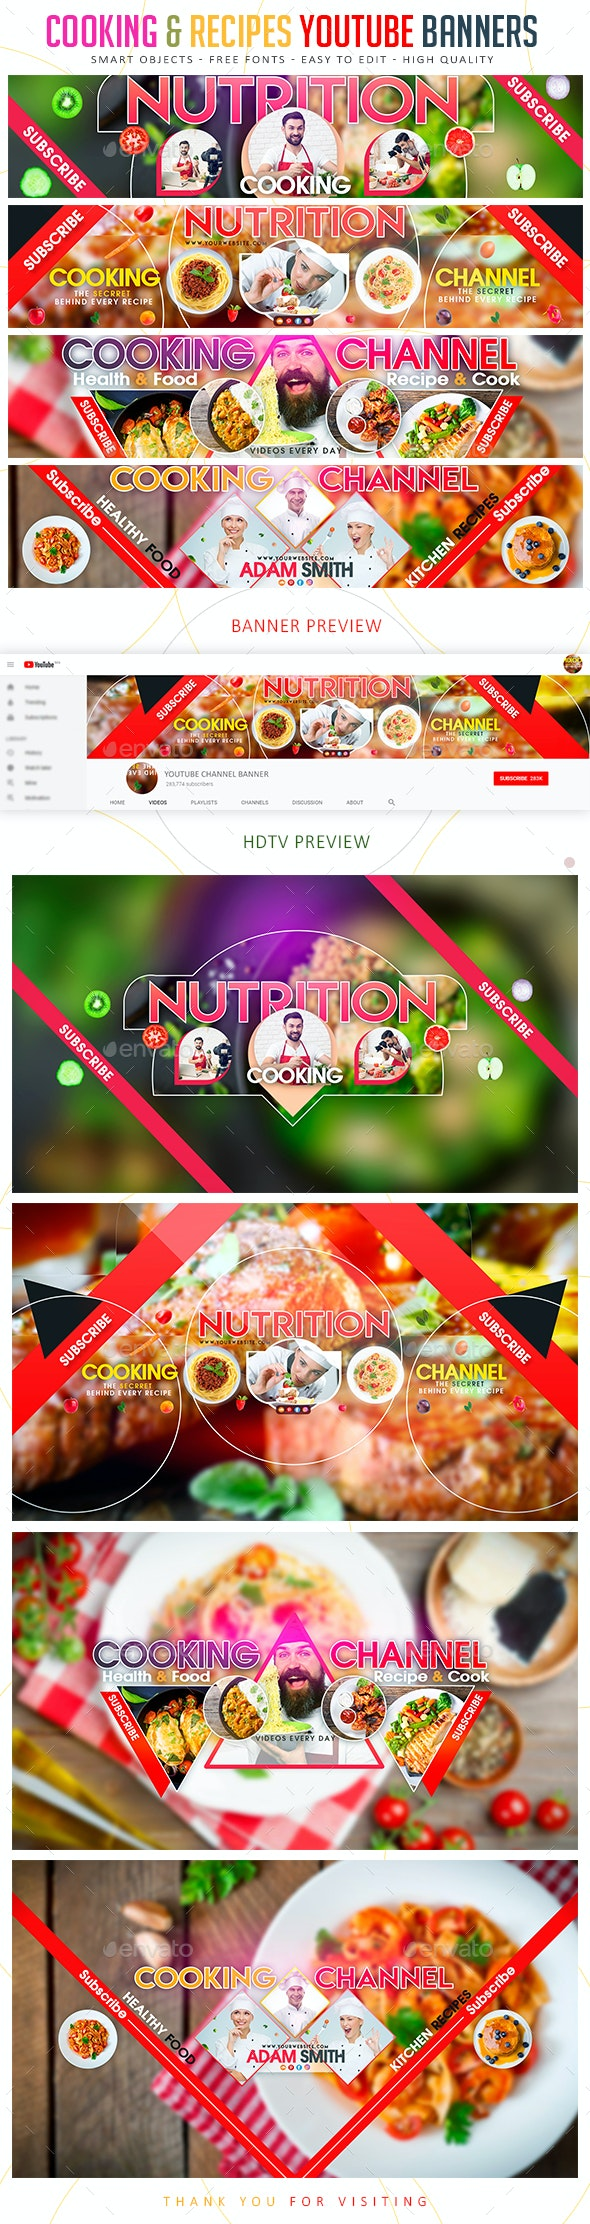 Cooking Recipes Youtube Banner By Blildesign Graphicriver